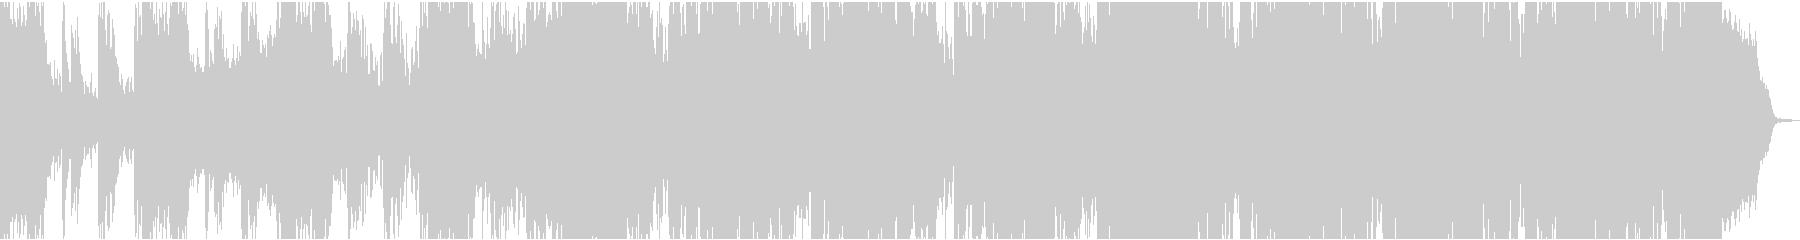 Iron Army's unreproduced waveform